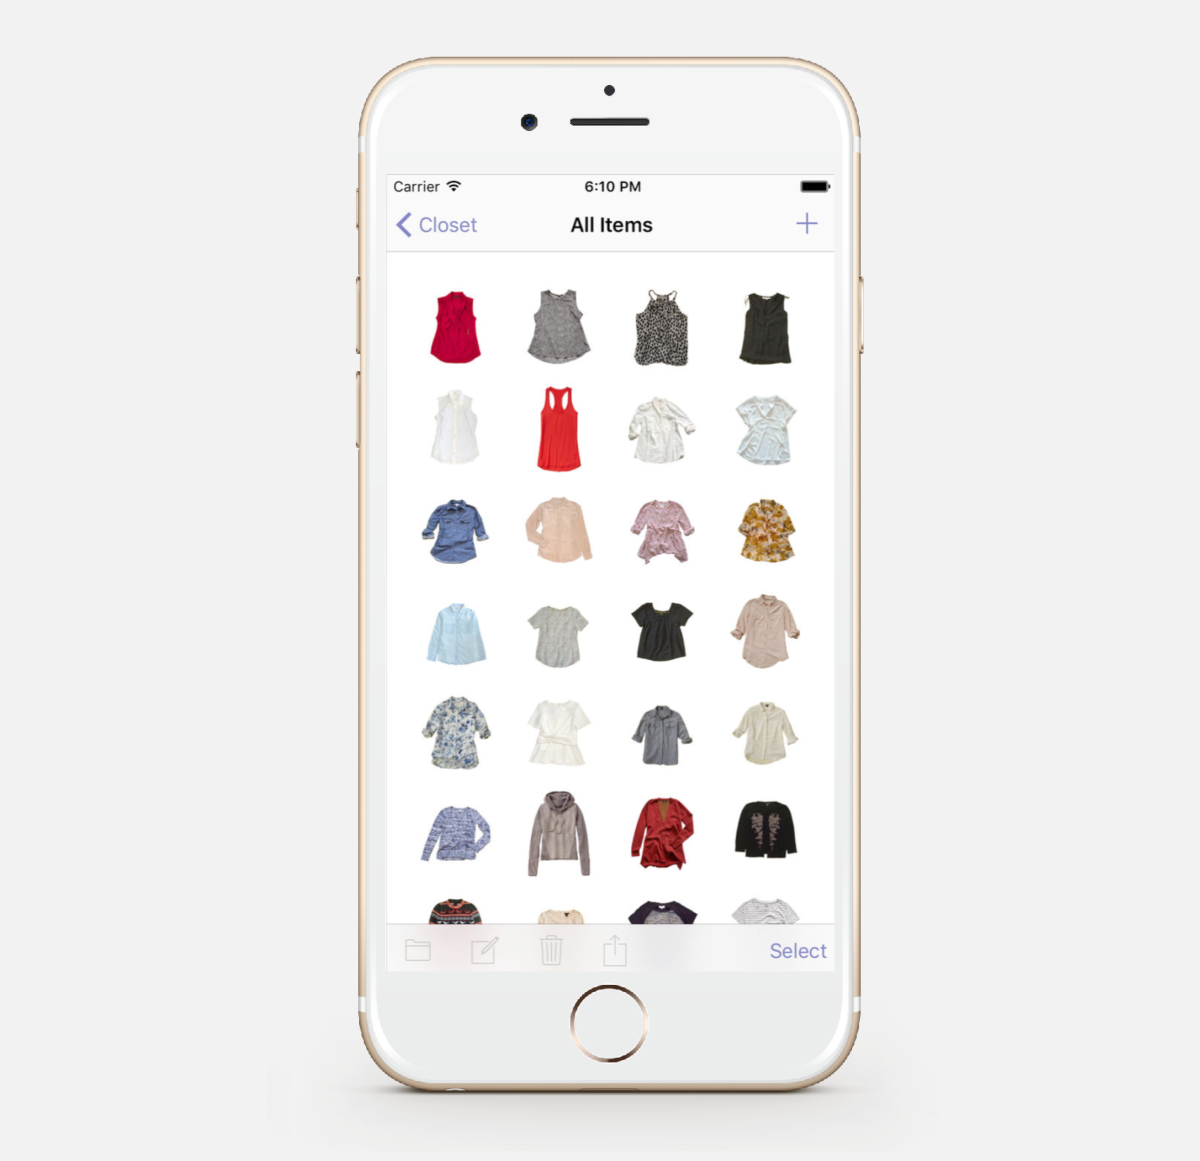 The Best Closet Organizer Apps for Your Wardrobe - Verily